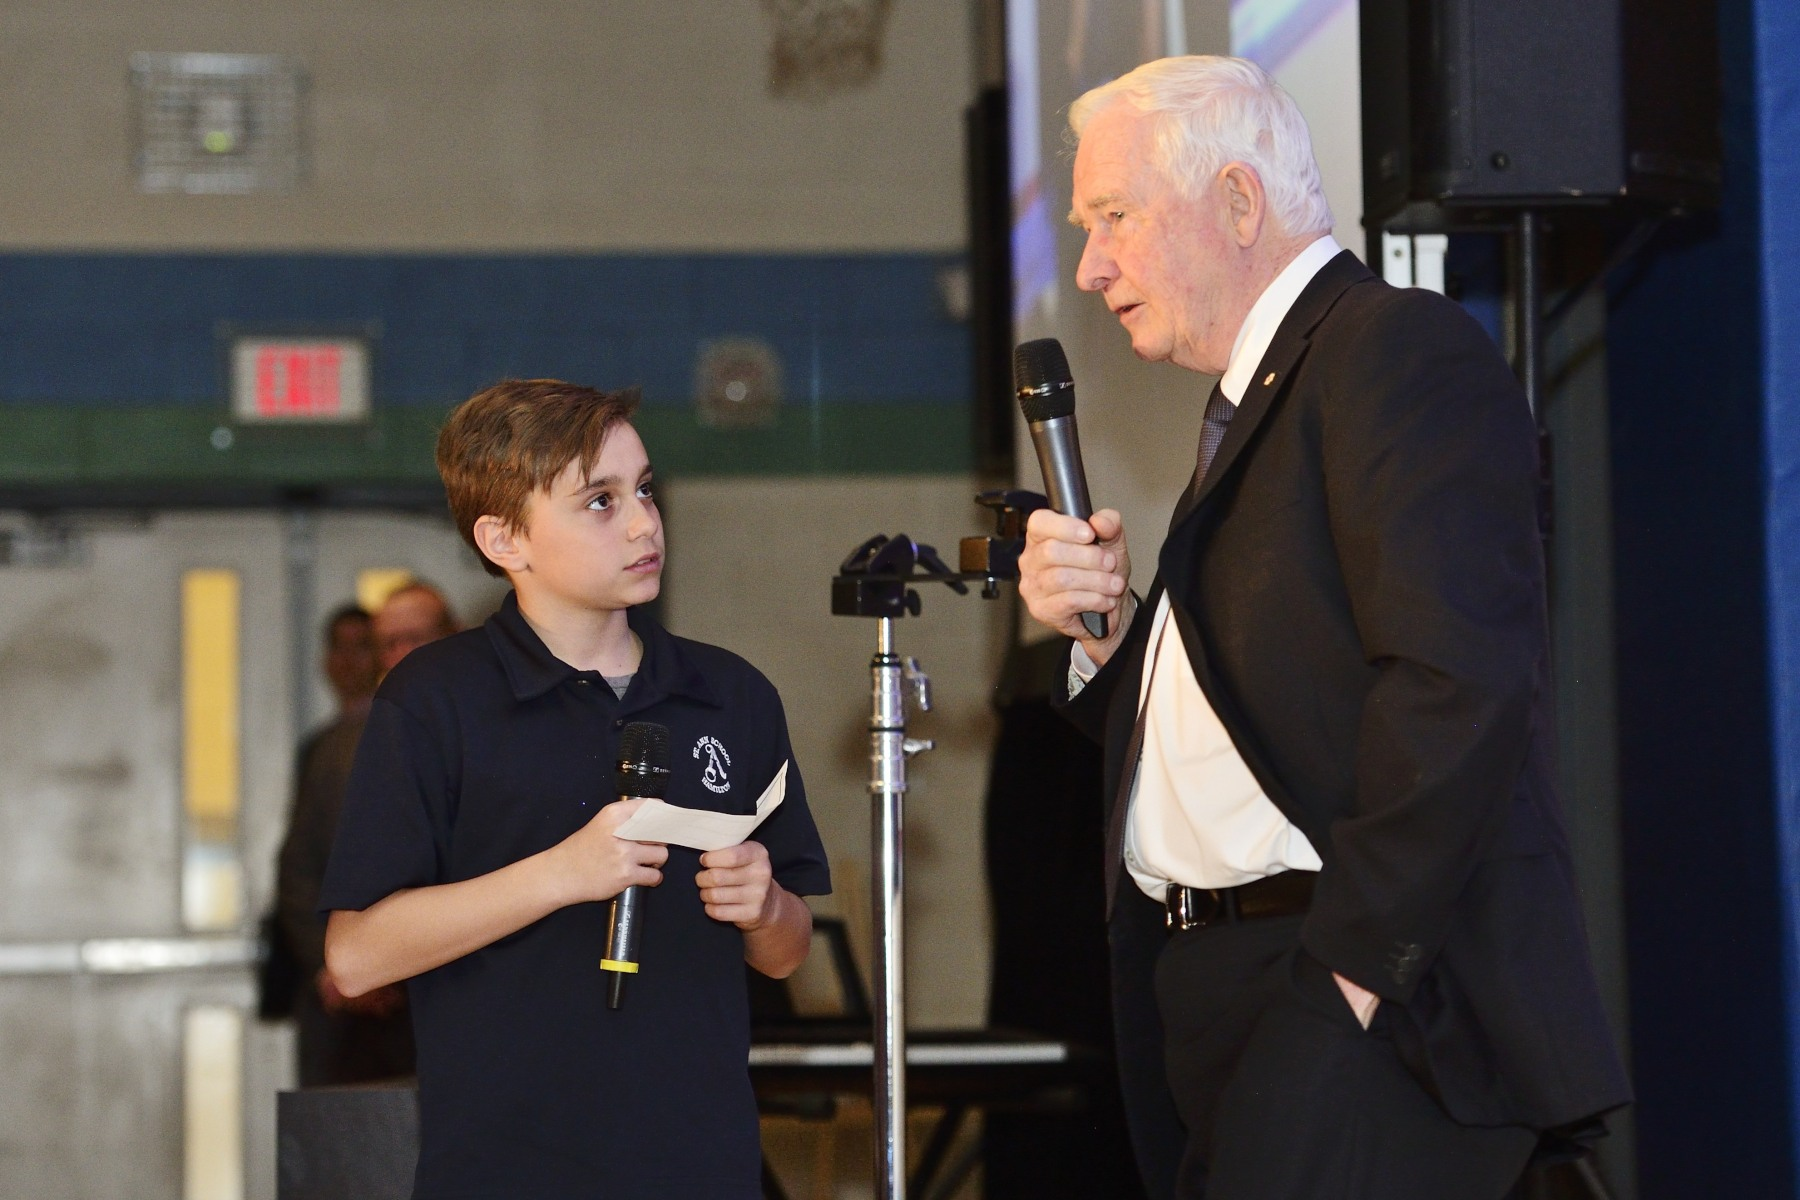 After his address, students had an opportunity to ask the Governor General questions.